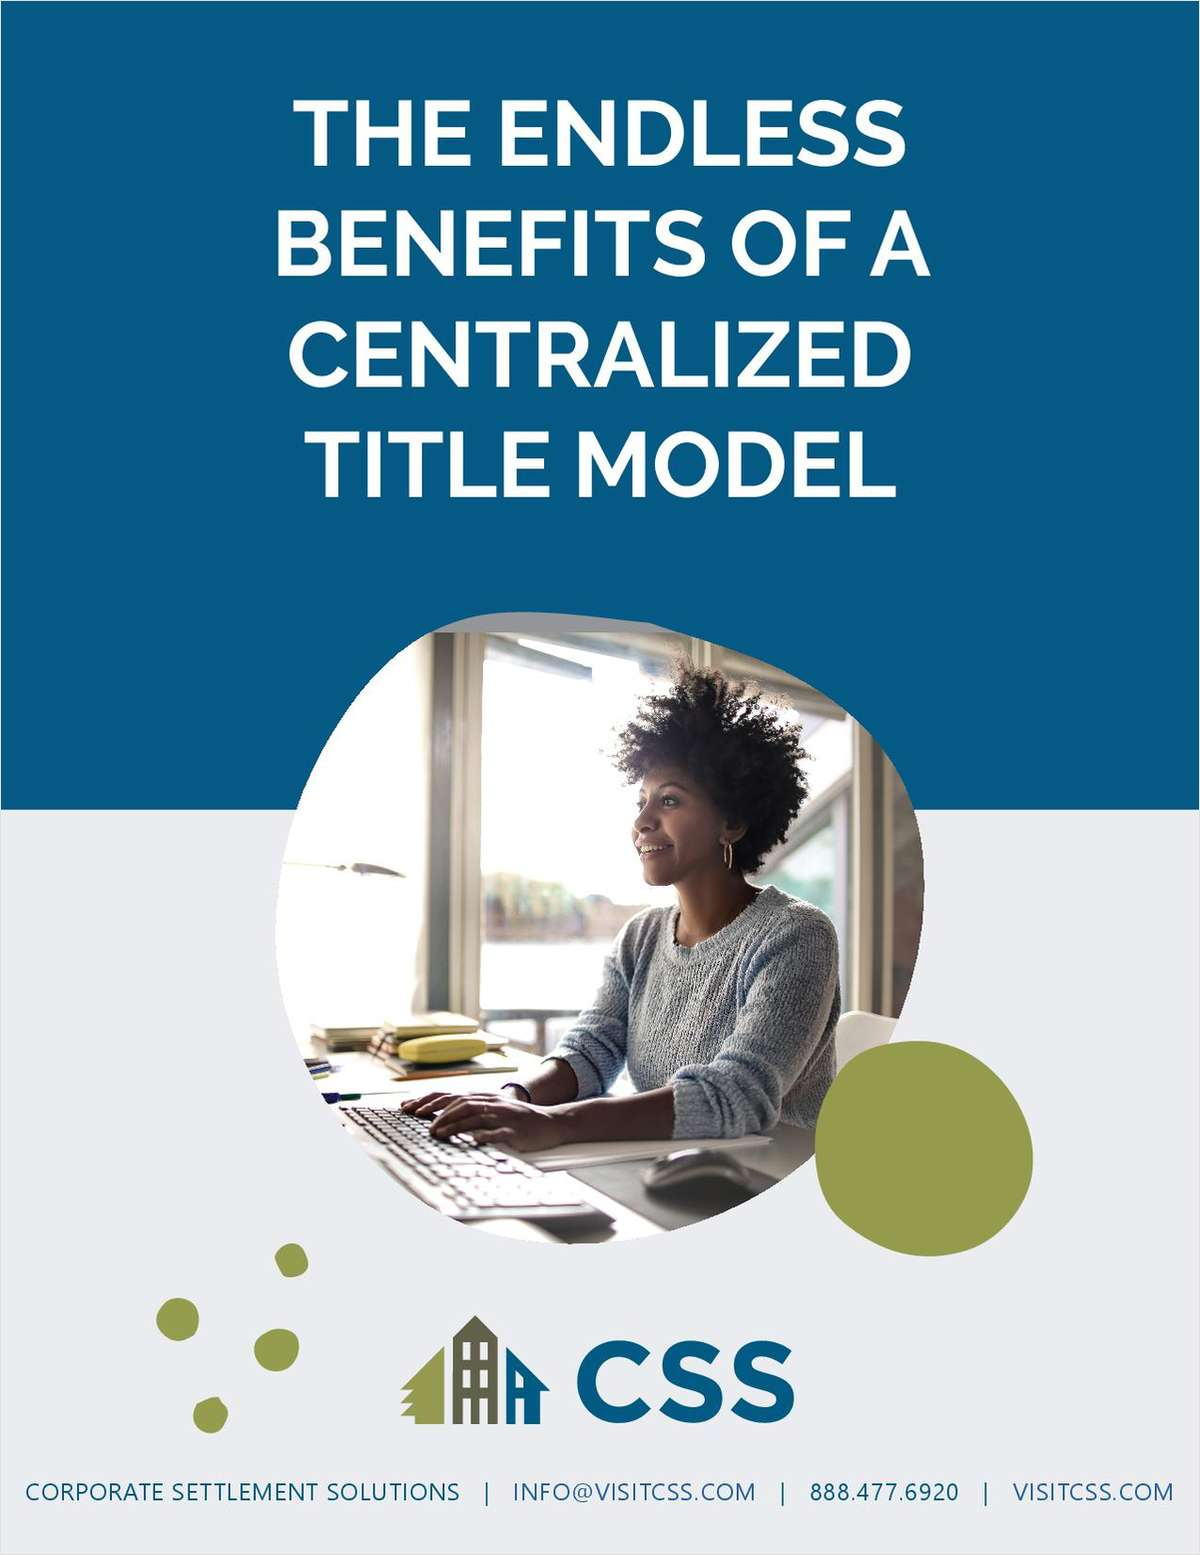 The Endless Benefits of a Centralized Title Model